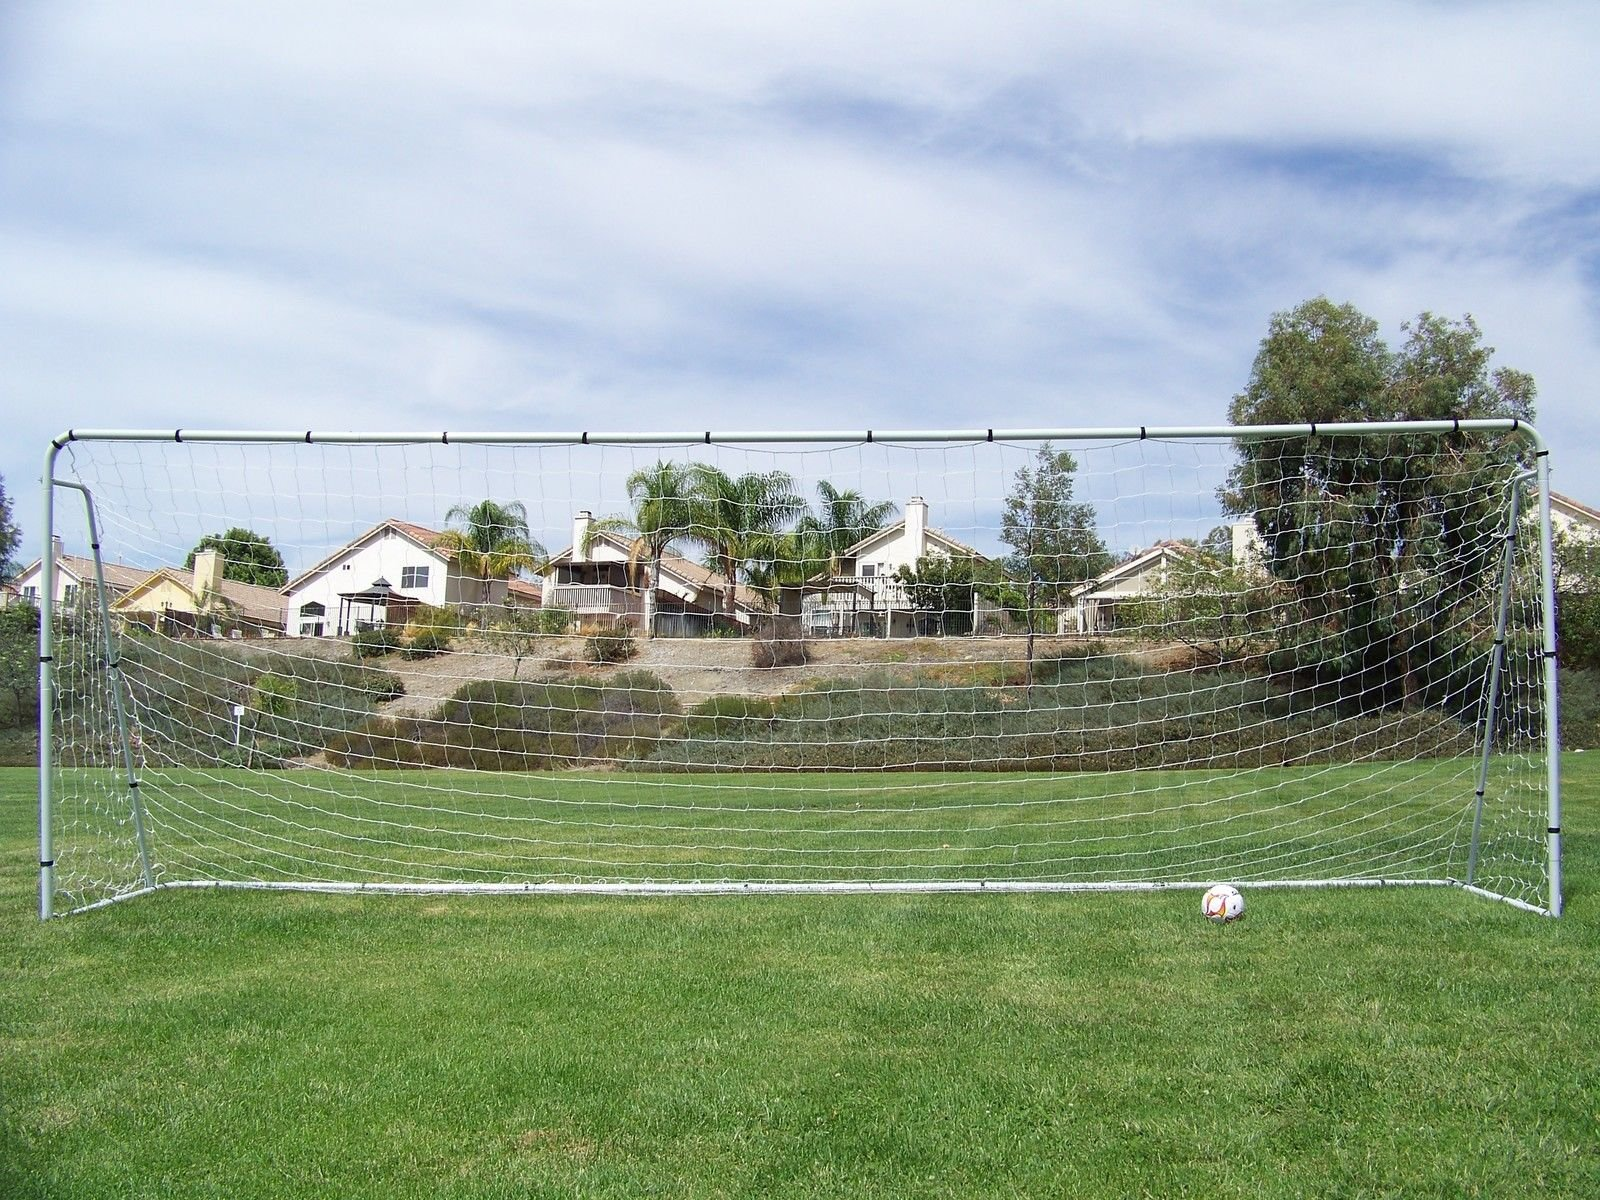 Official Youth Size 18.5 x 6.5 x 5 Ft. Heavy Duty Steel Soccer Goal w/Net. Regulation Youth FIFA/MLS League Size Goals. Professional Portable Practice Training Aid. 18.5 x 6.5. 18.5x6.5 Soccer Goal